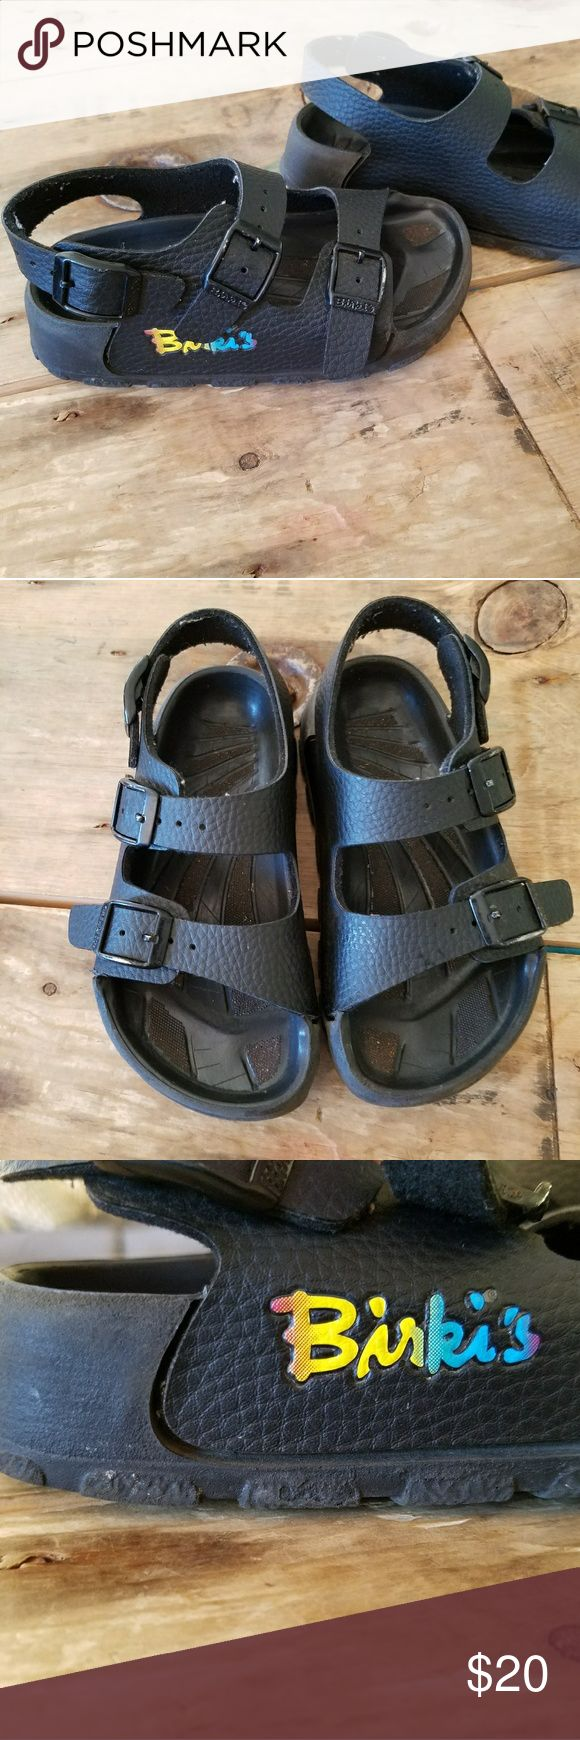 Little kids Black Leather Birkenstock Birkis SZ 27 Little kids Birkis, size 27. Black leather straps and black rubber sole. Buckles all work. These sandals are pre-owned but still have a lot of life left in them! Awesome for either boy or girl, stay on good and seem to be a very comfortable fit. Birkenstock Shoes Sandals & Flip Flops